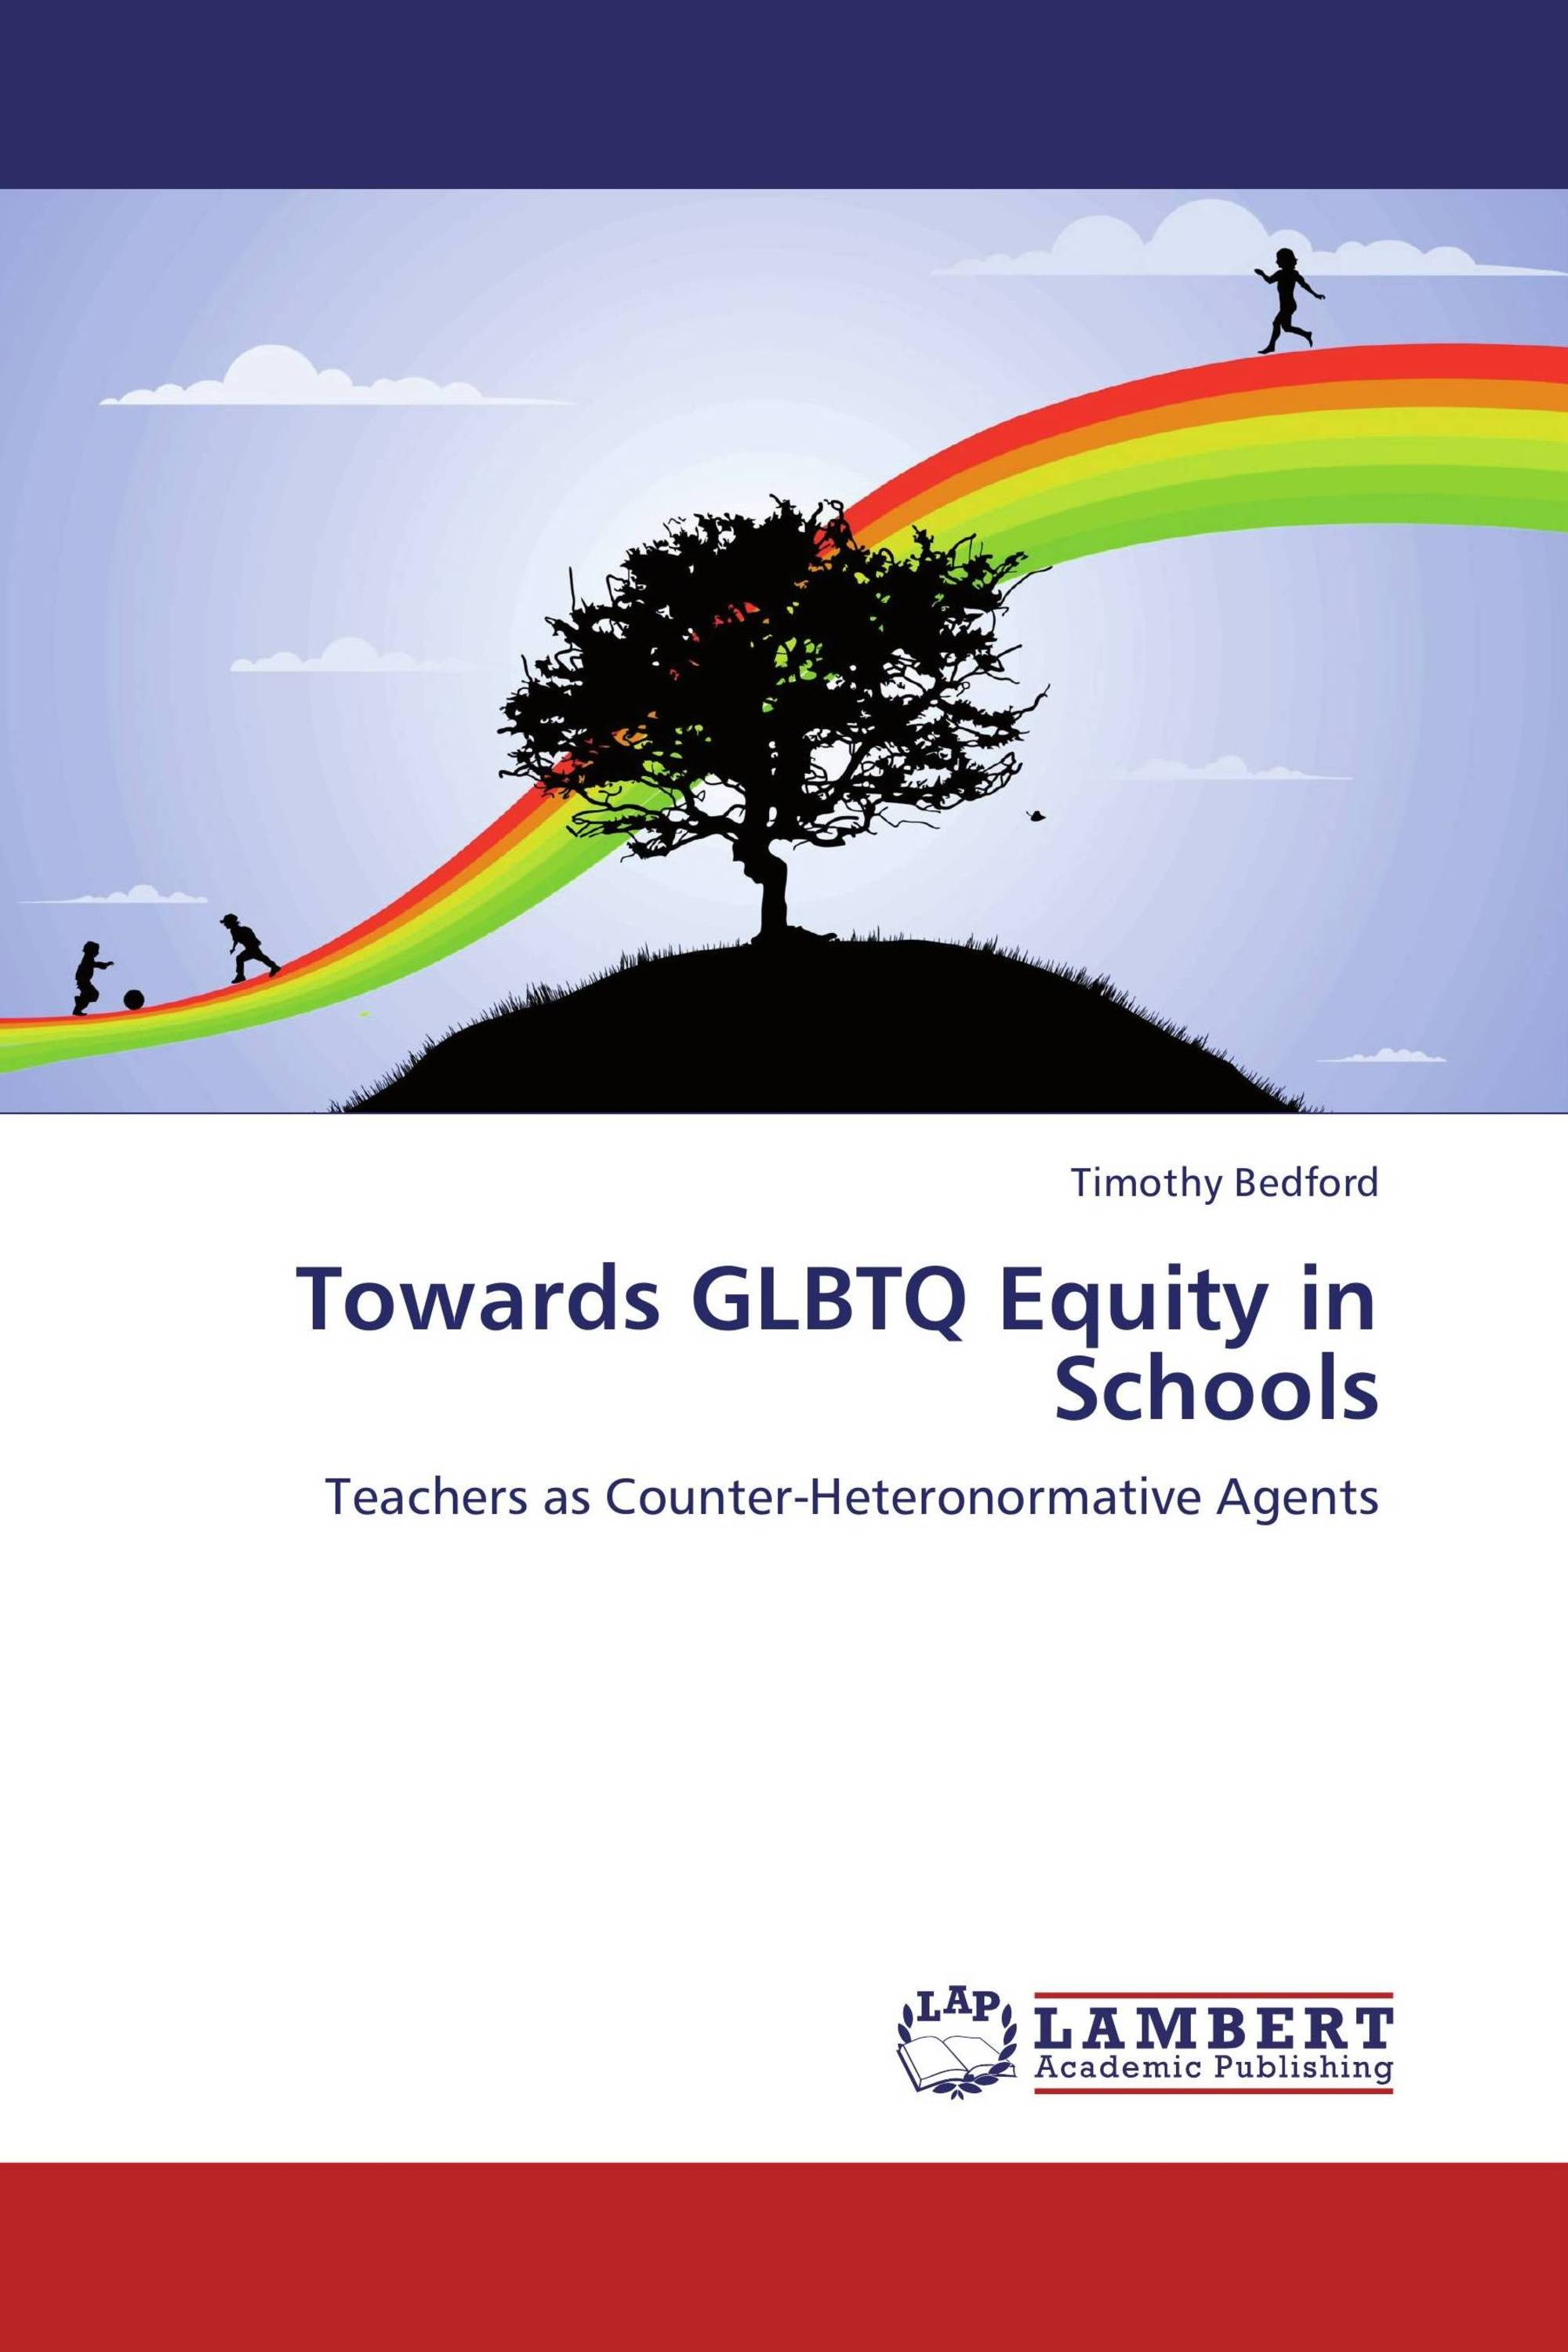 Towards GLBTQ Equity in Schools